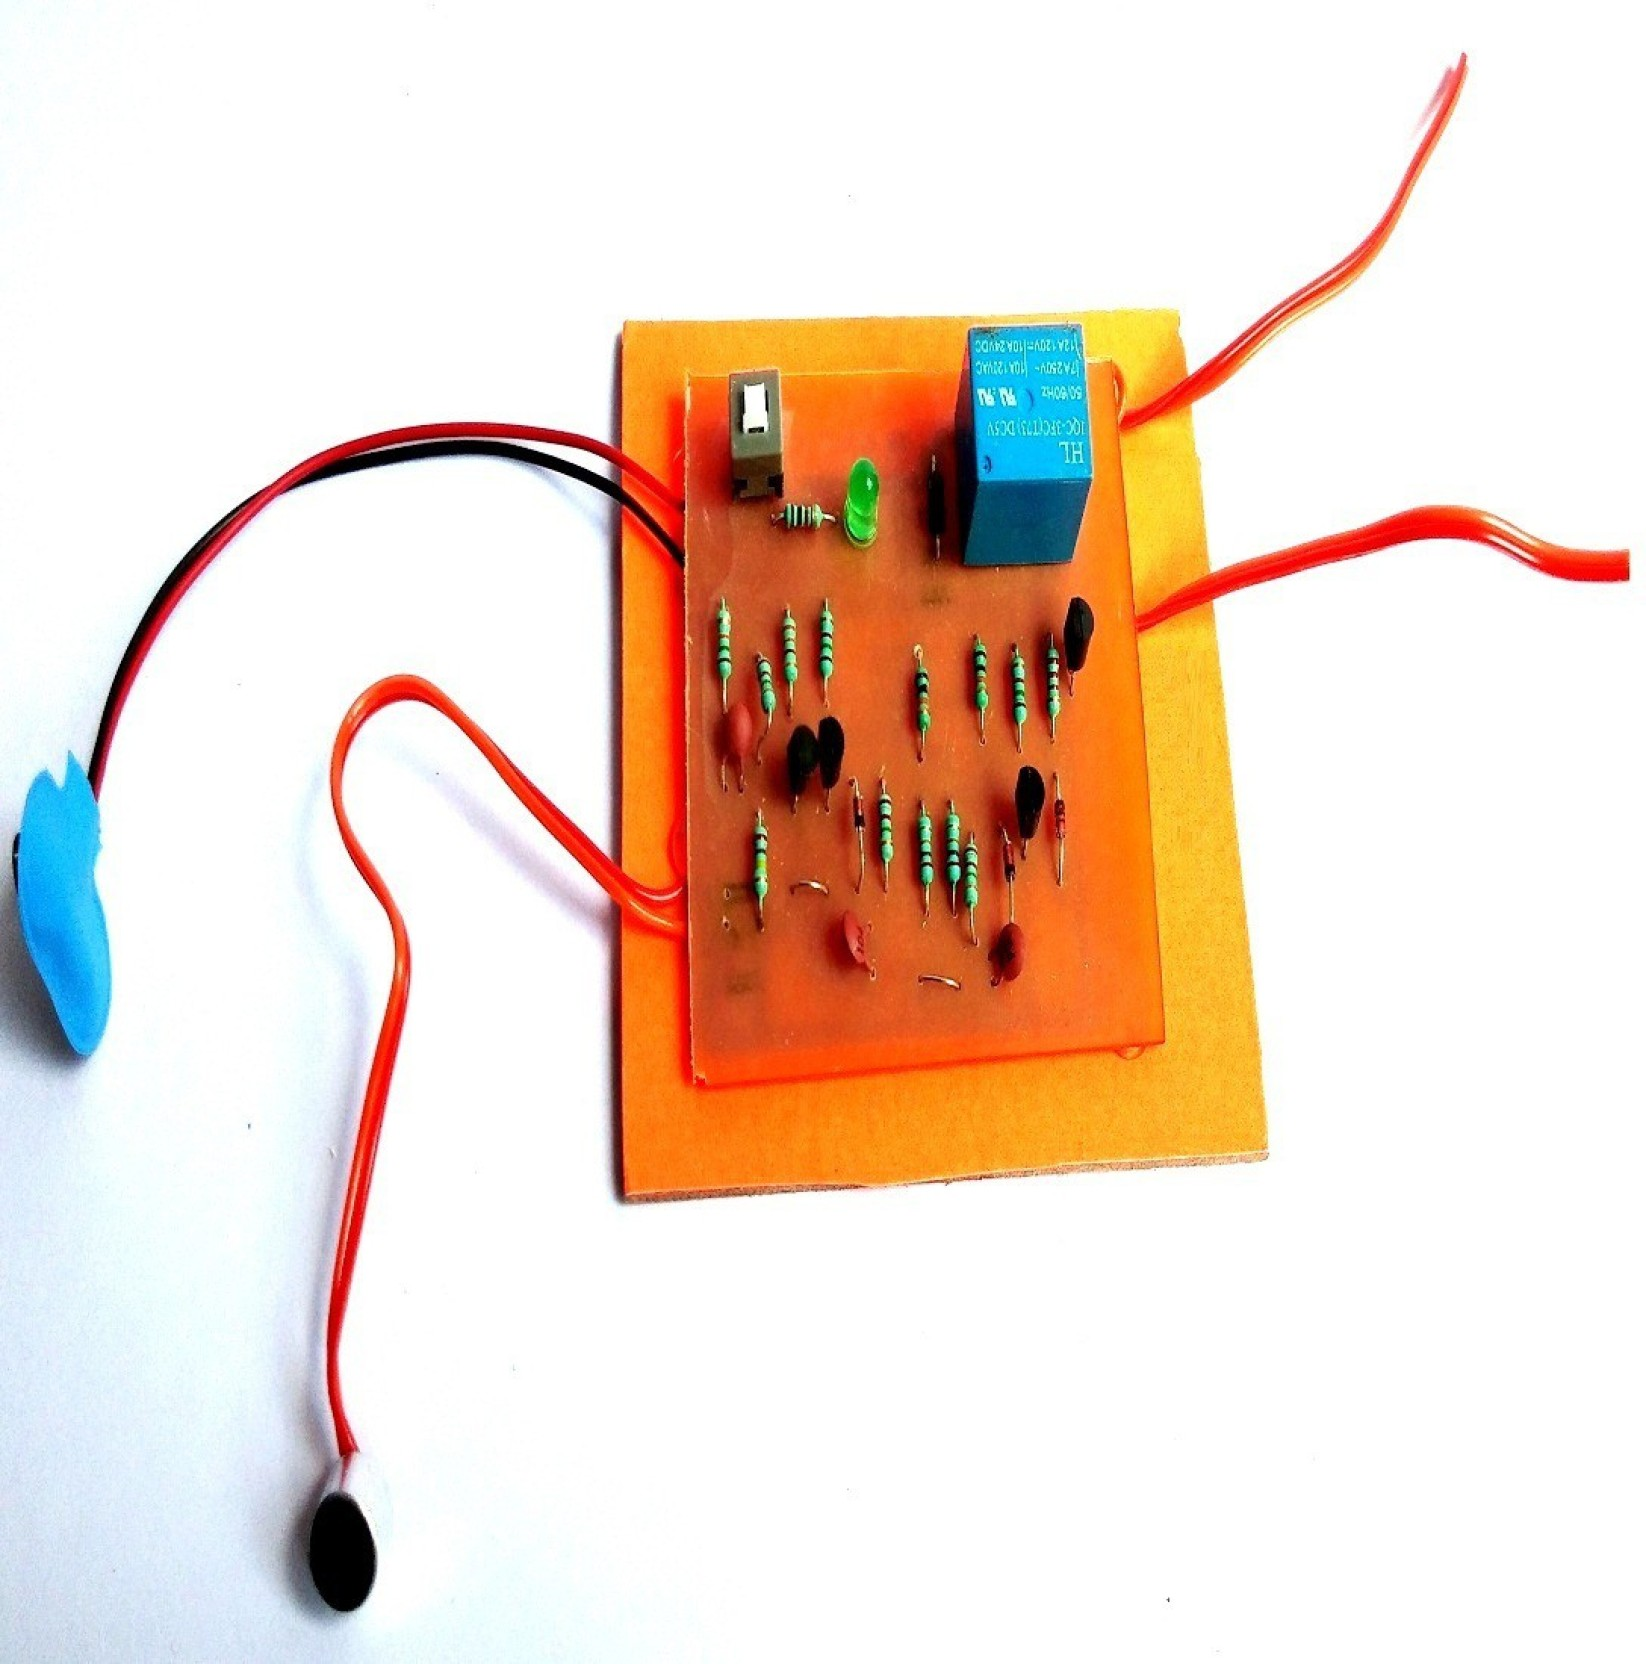 Sr Robotics Clap Switch Sound Control Circuit Educational Double Homemade Electronic Hobby Kit Add To Cart